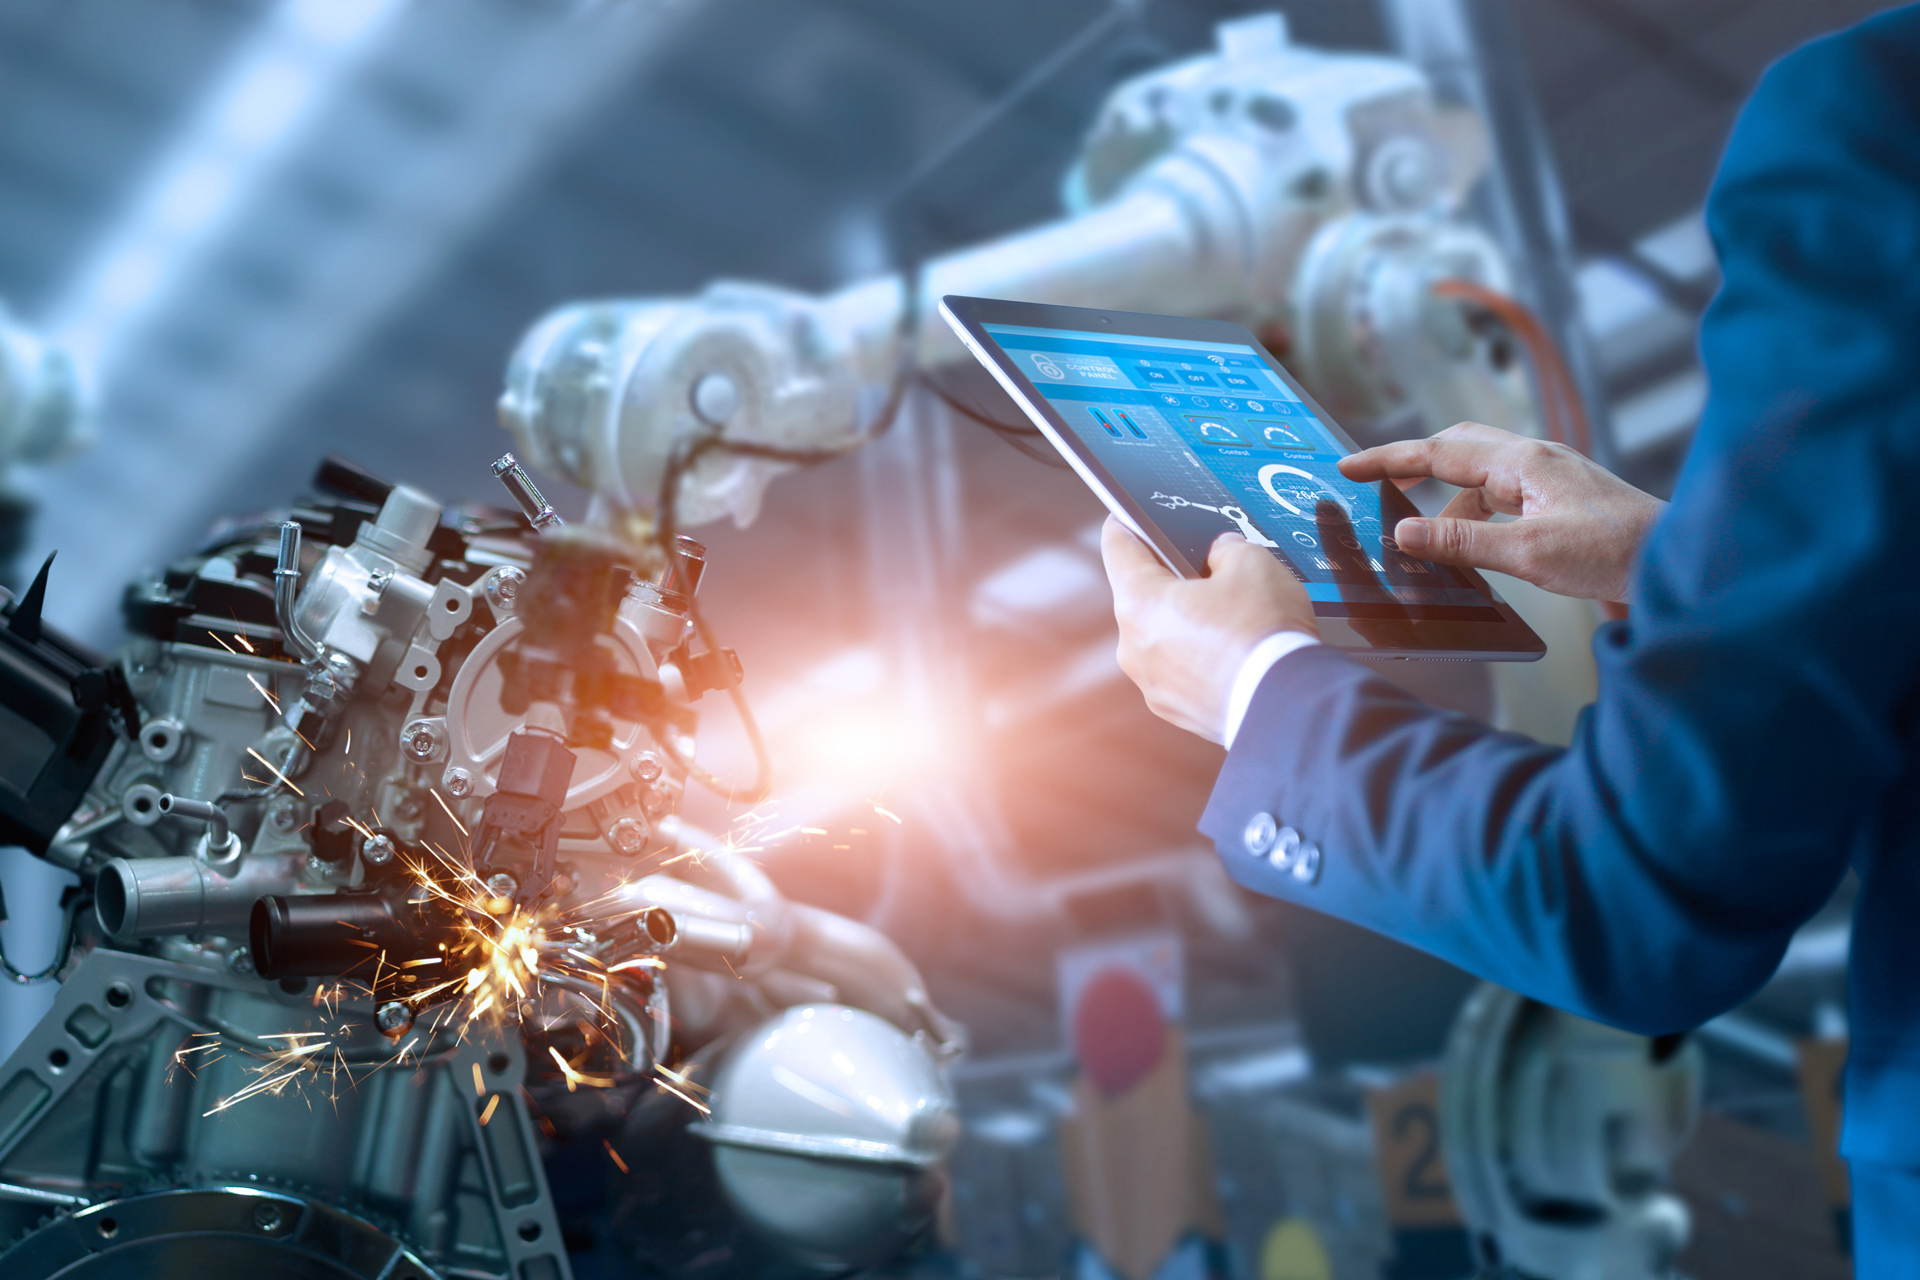 DELMIAWORKS Manufacturing ERP: Is it right for my business?